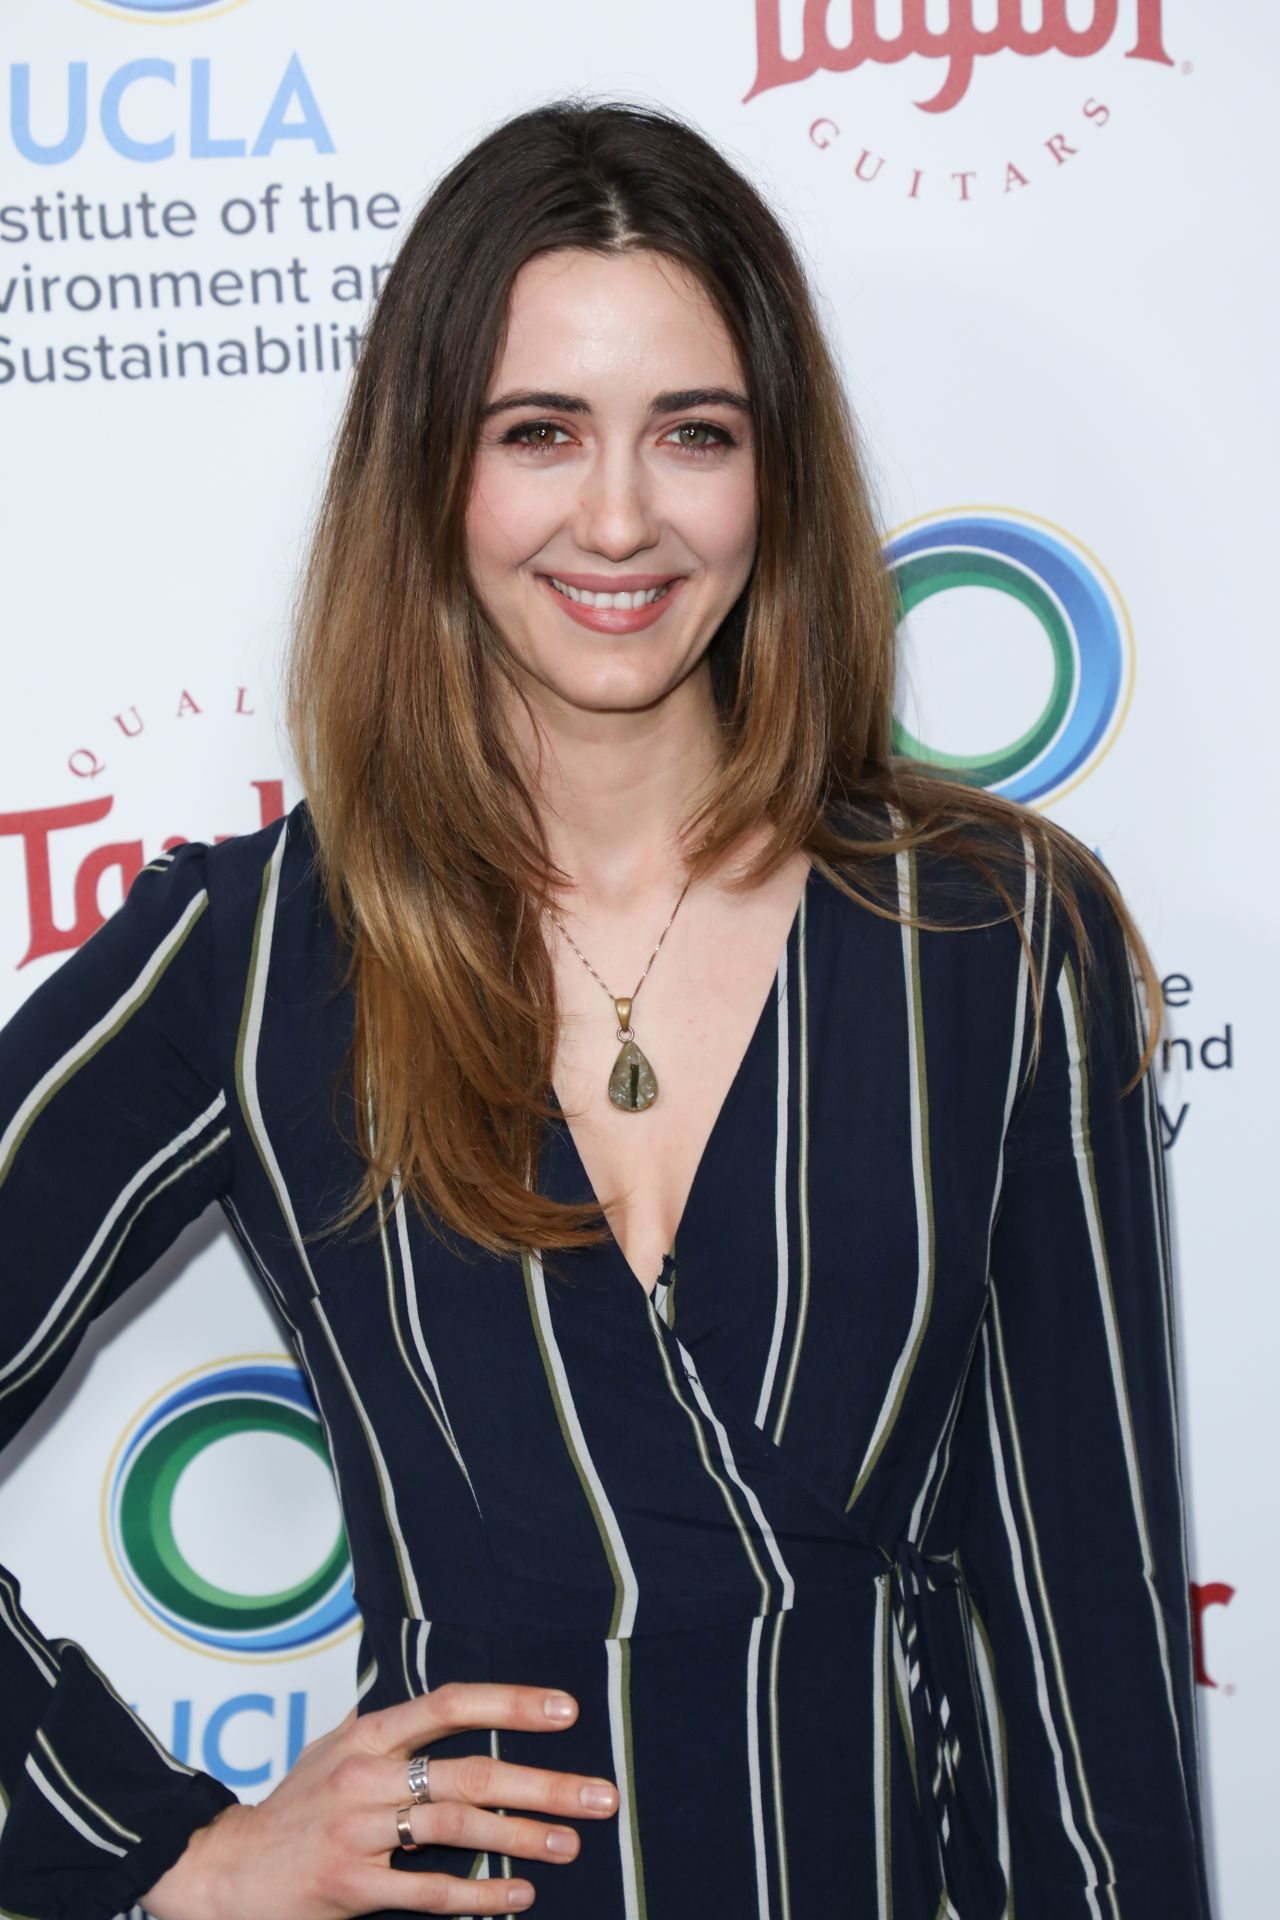 Madeline Zima Ucla S Institute Of The Environment And